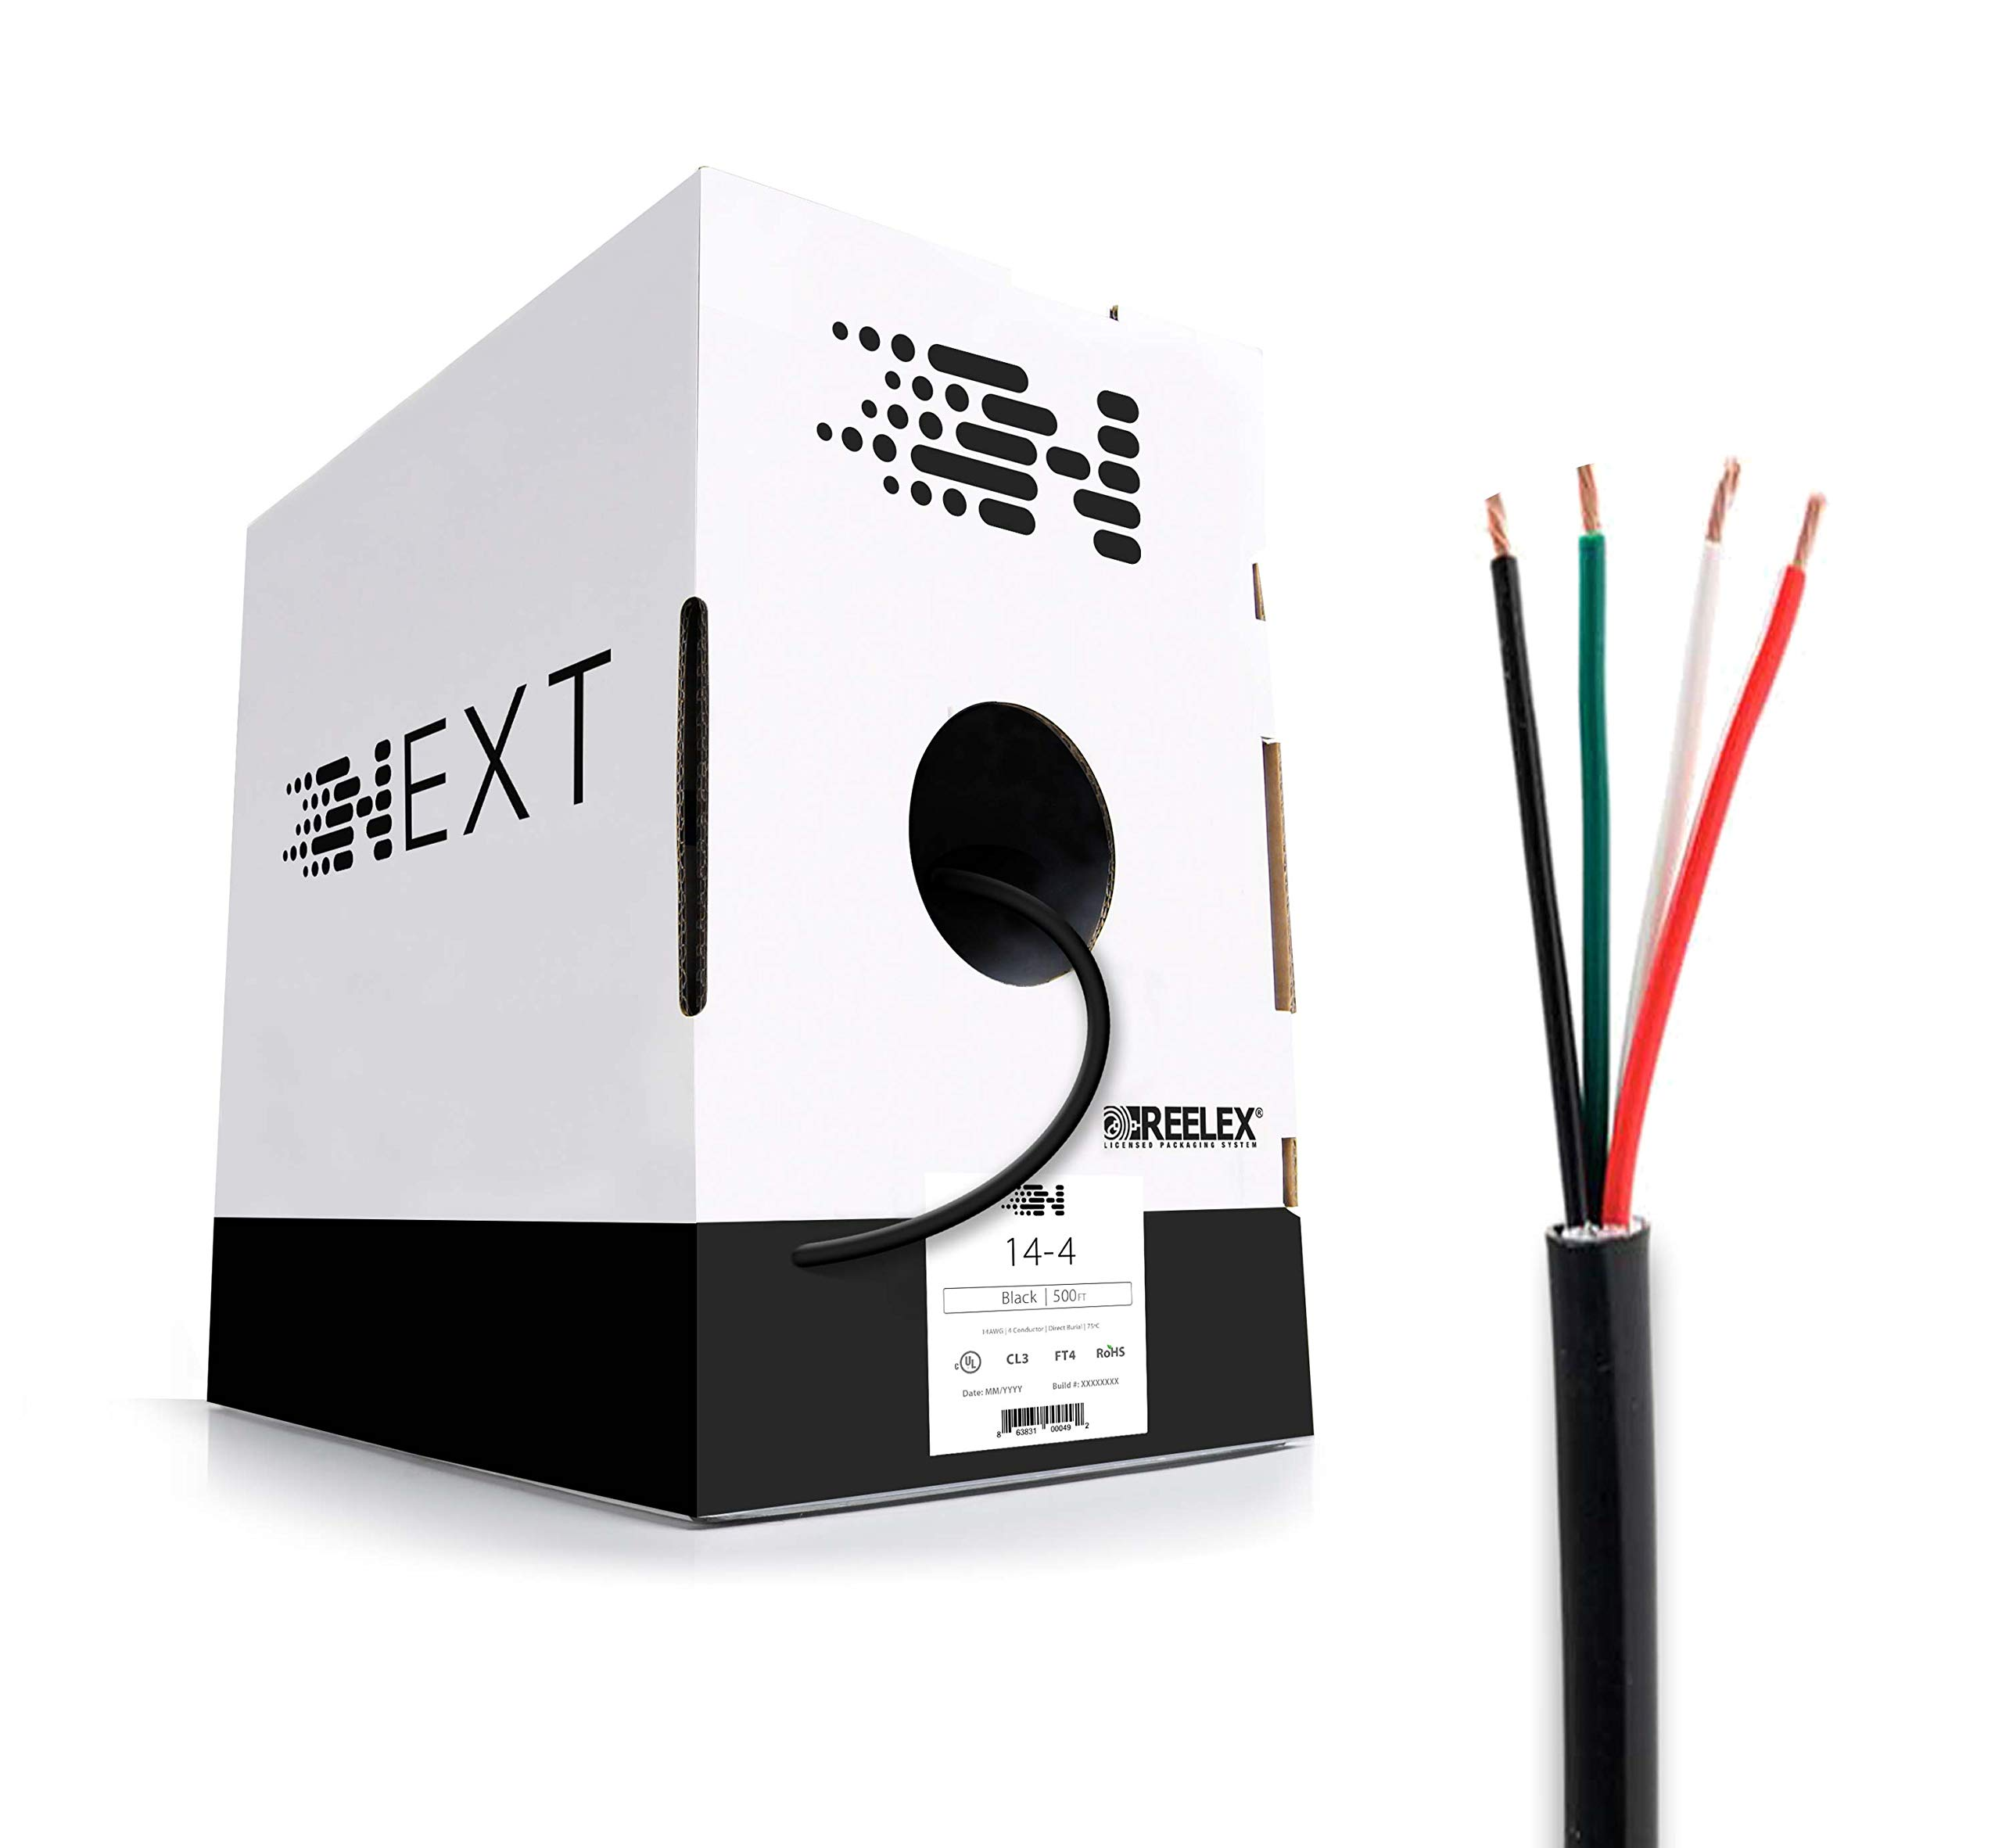 Next 14/4 Speaker Wire - 14 AWG/Gauge 4 Conductor - UL Listed In Wall (CL2/CL3) and Outdoor/In Ground (Direct Burial) Rated - Oxygen-Free Copper (OFC) - 500 Foot Bulk Cable Pull Box - Black by Next